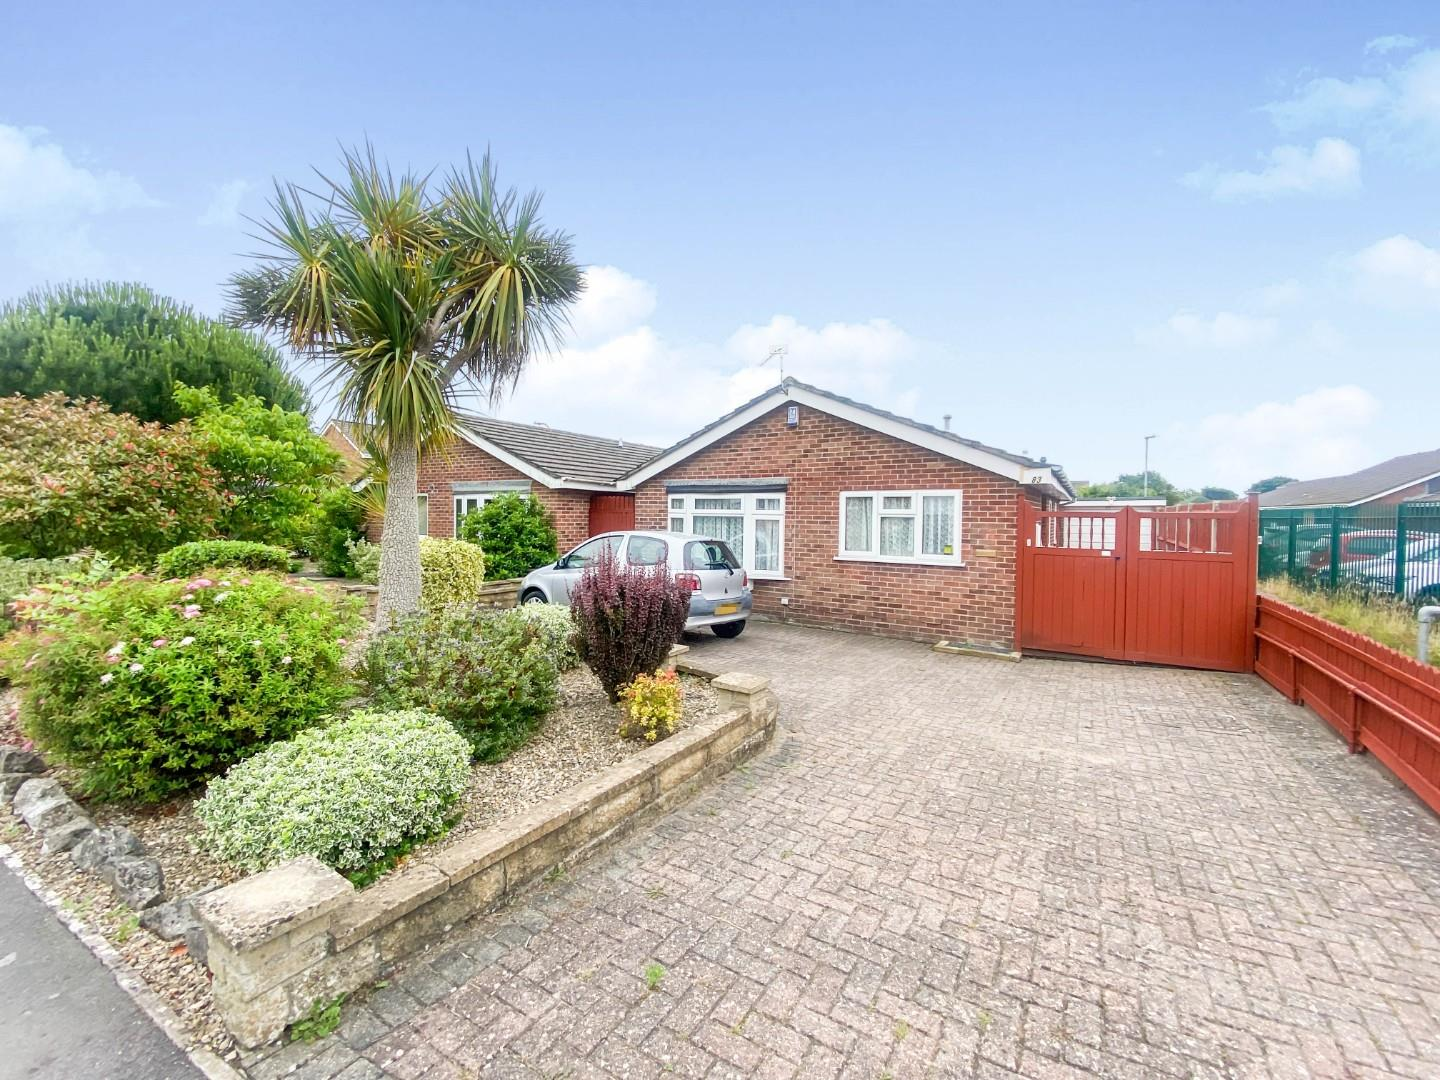 2 bed detached bungalow for sale in St. Marks Road, Weston-Super-Mare, BS22